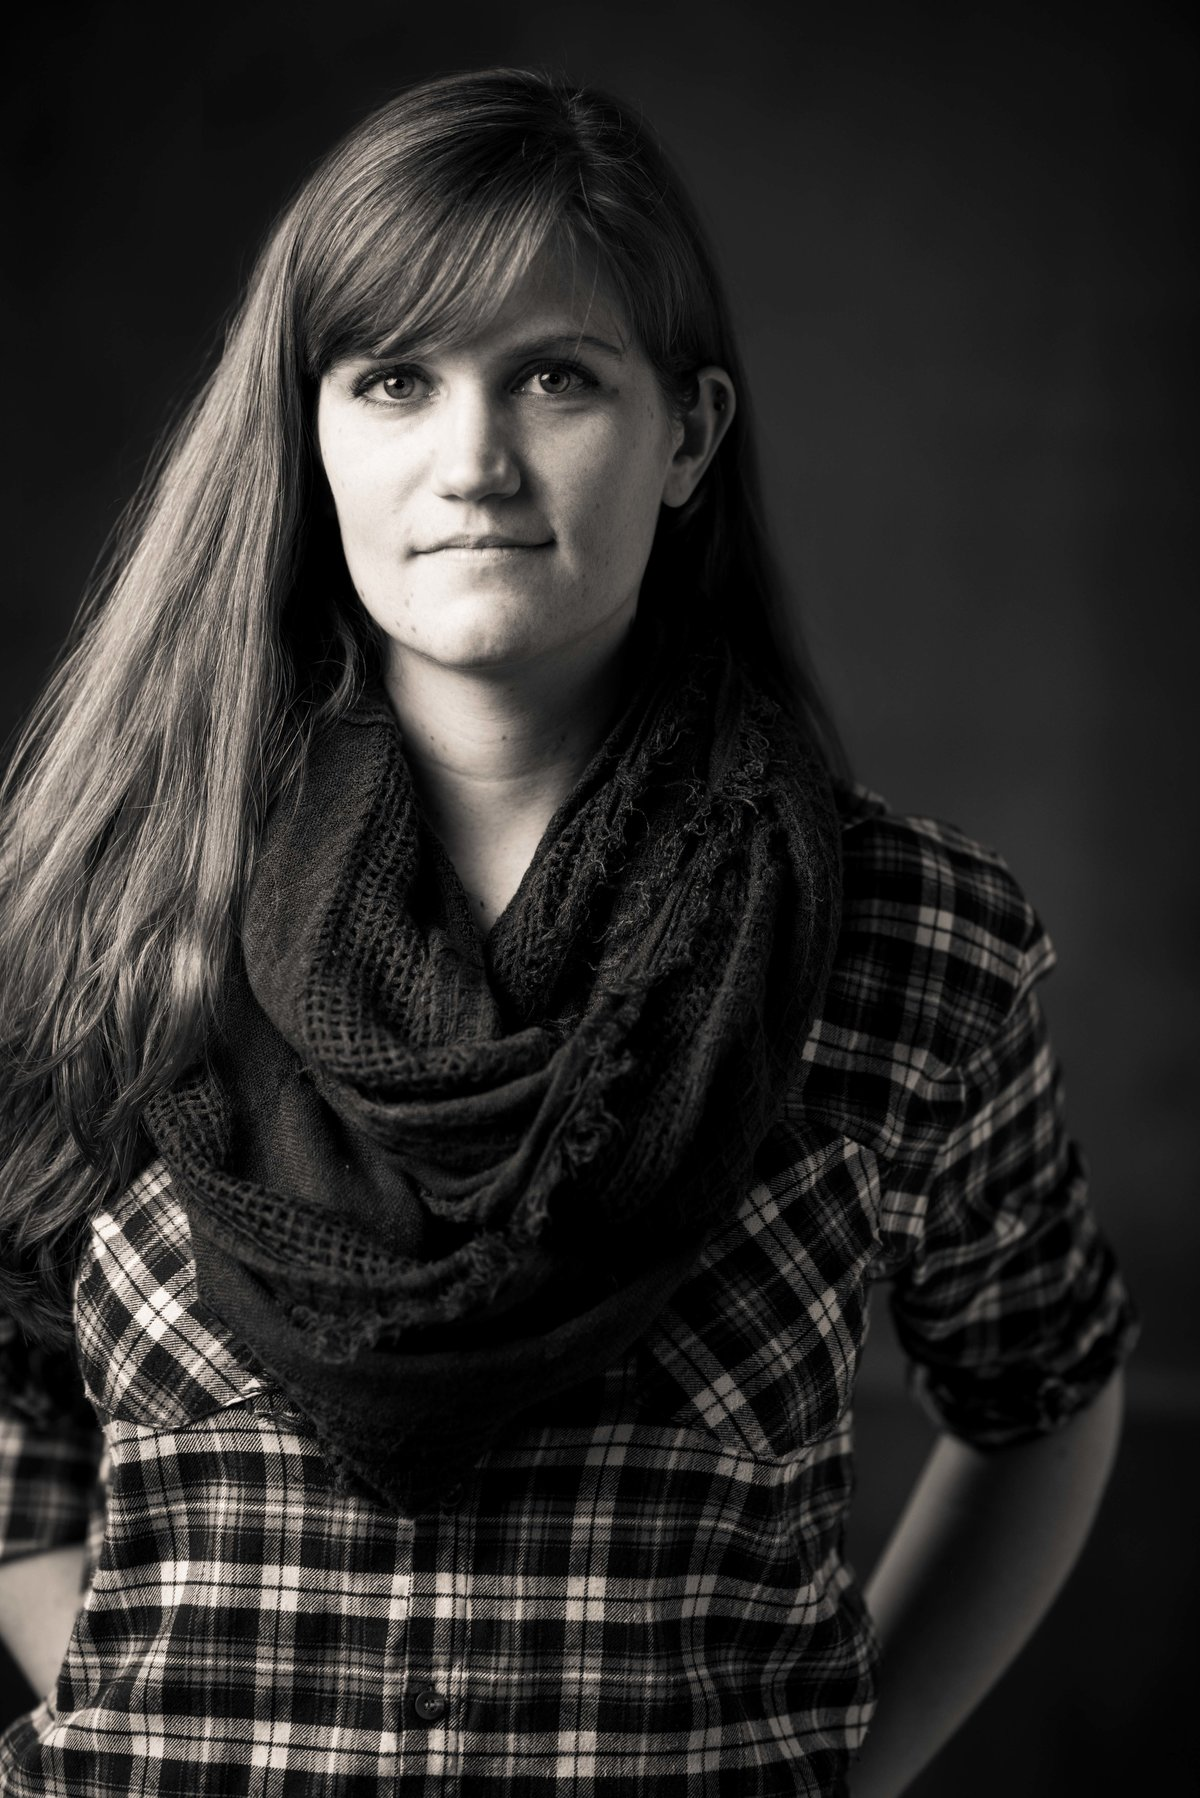 Chicago studio portrait, woman in flannel shirt and scarf.